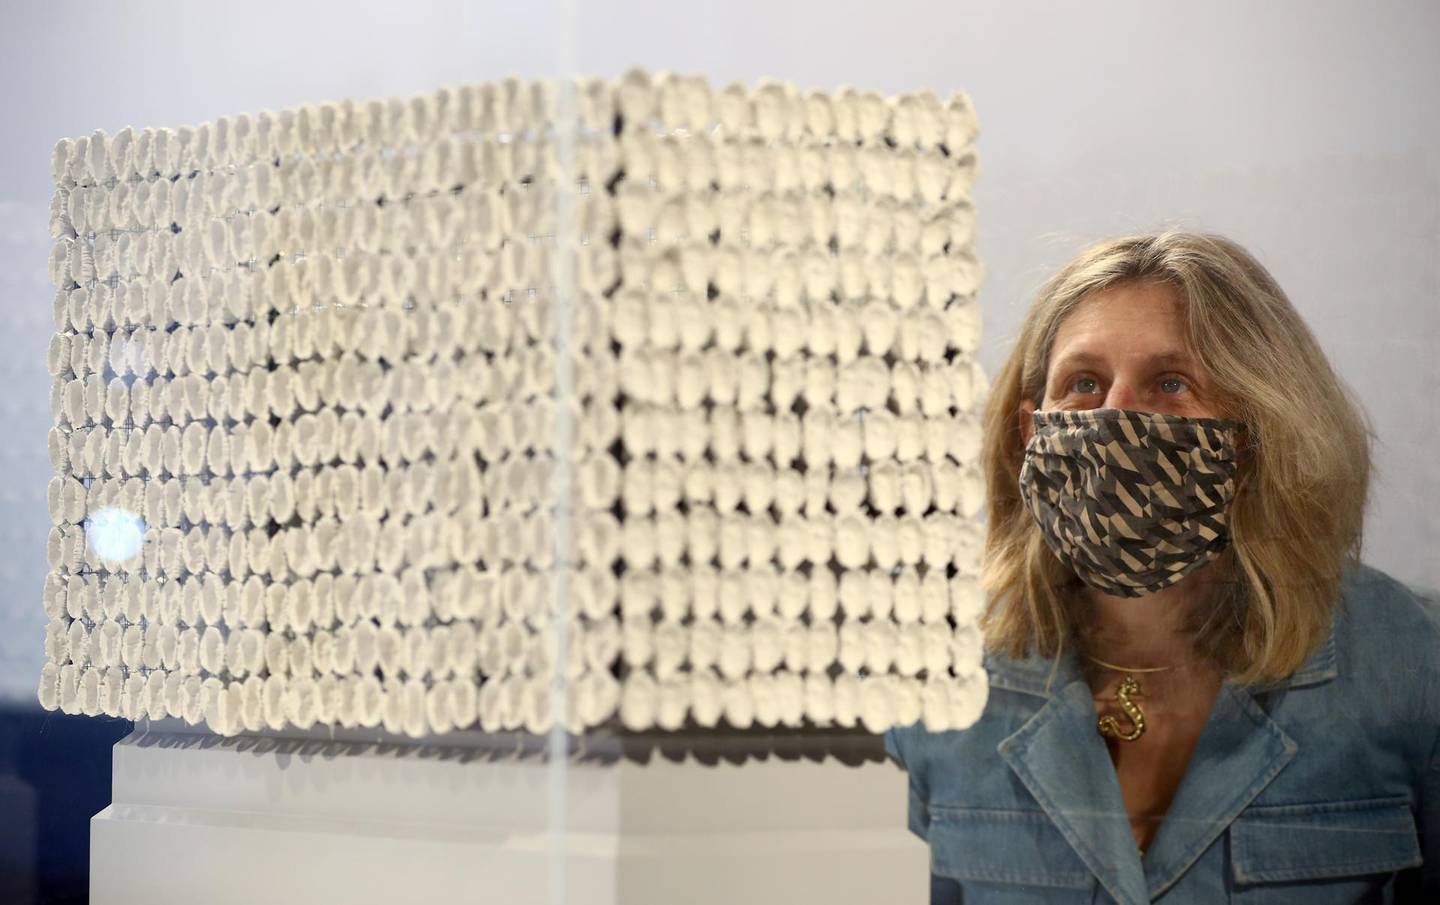 """A gallery assistant poses as she looks at """"Improntas (Imprint)"""" by Teresa Margolles, one of six artworks shortlisted as the next design for the Fourth Plinth at Trafalgar Square, on display inside the National Gallery in London, Britain, May 24, 2021. REUTERS/Hannah McKay"""